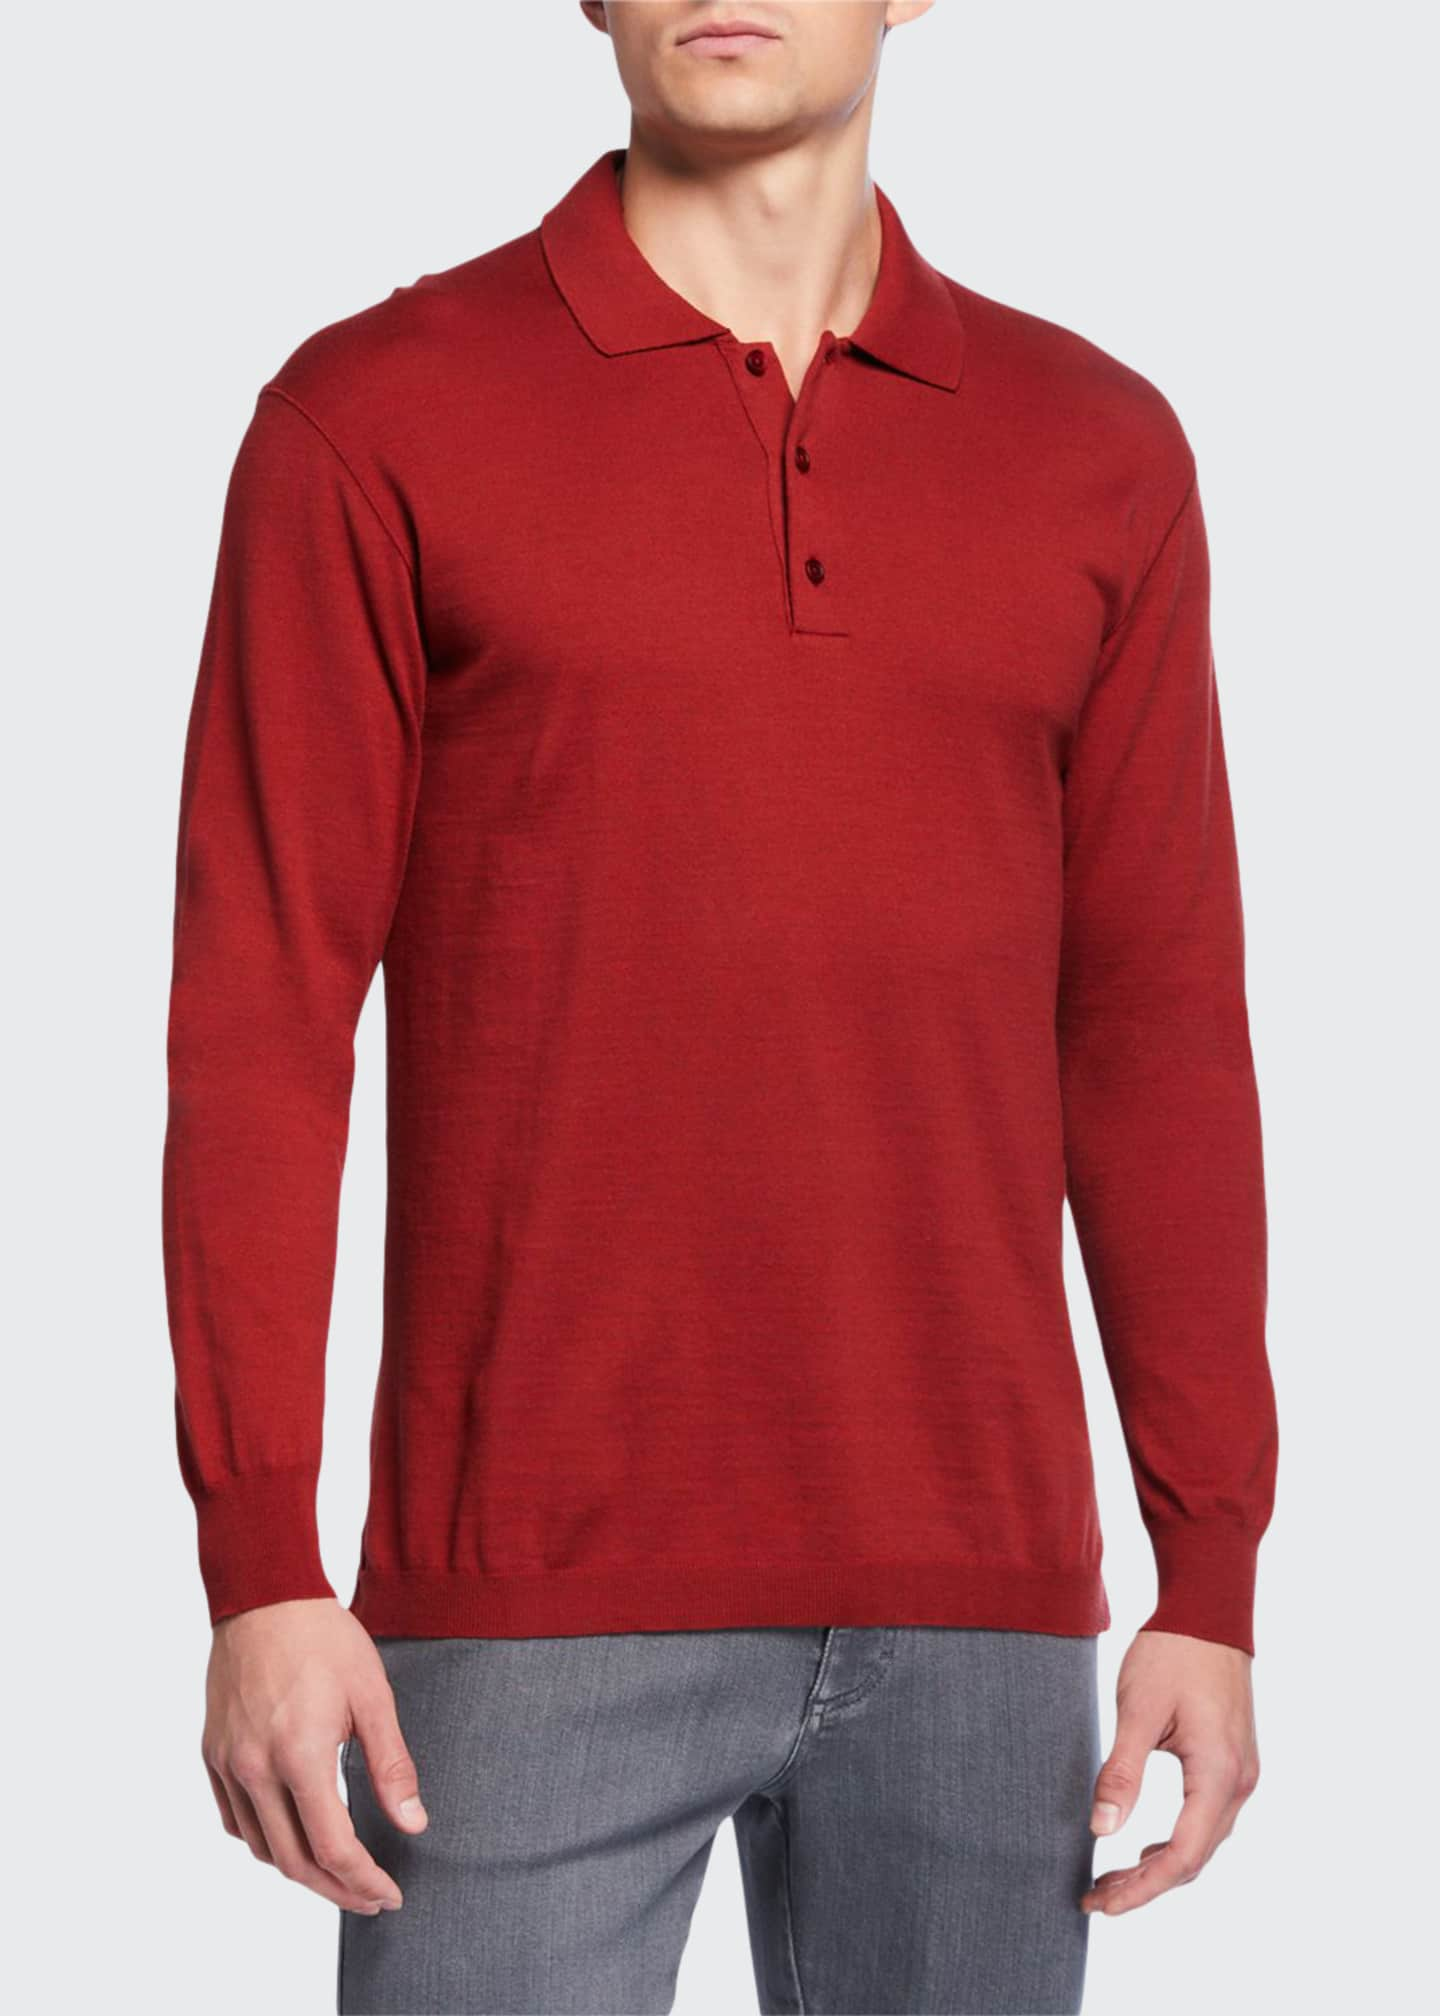 Ermenegildo Zegna Men's Long-Sleeve Jersey Polo Shirt